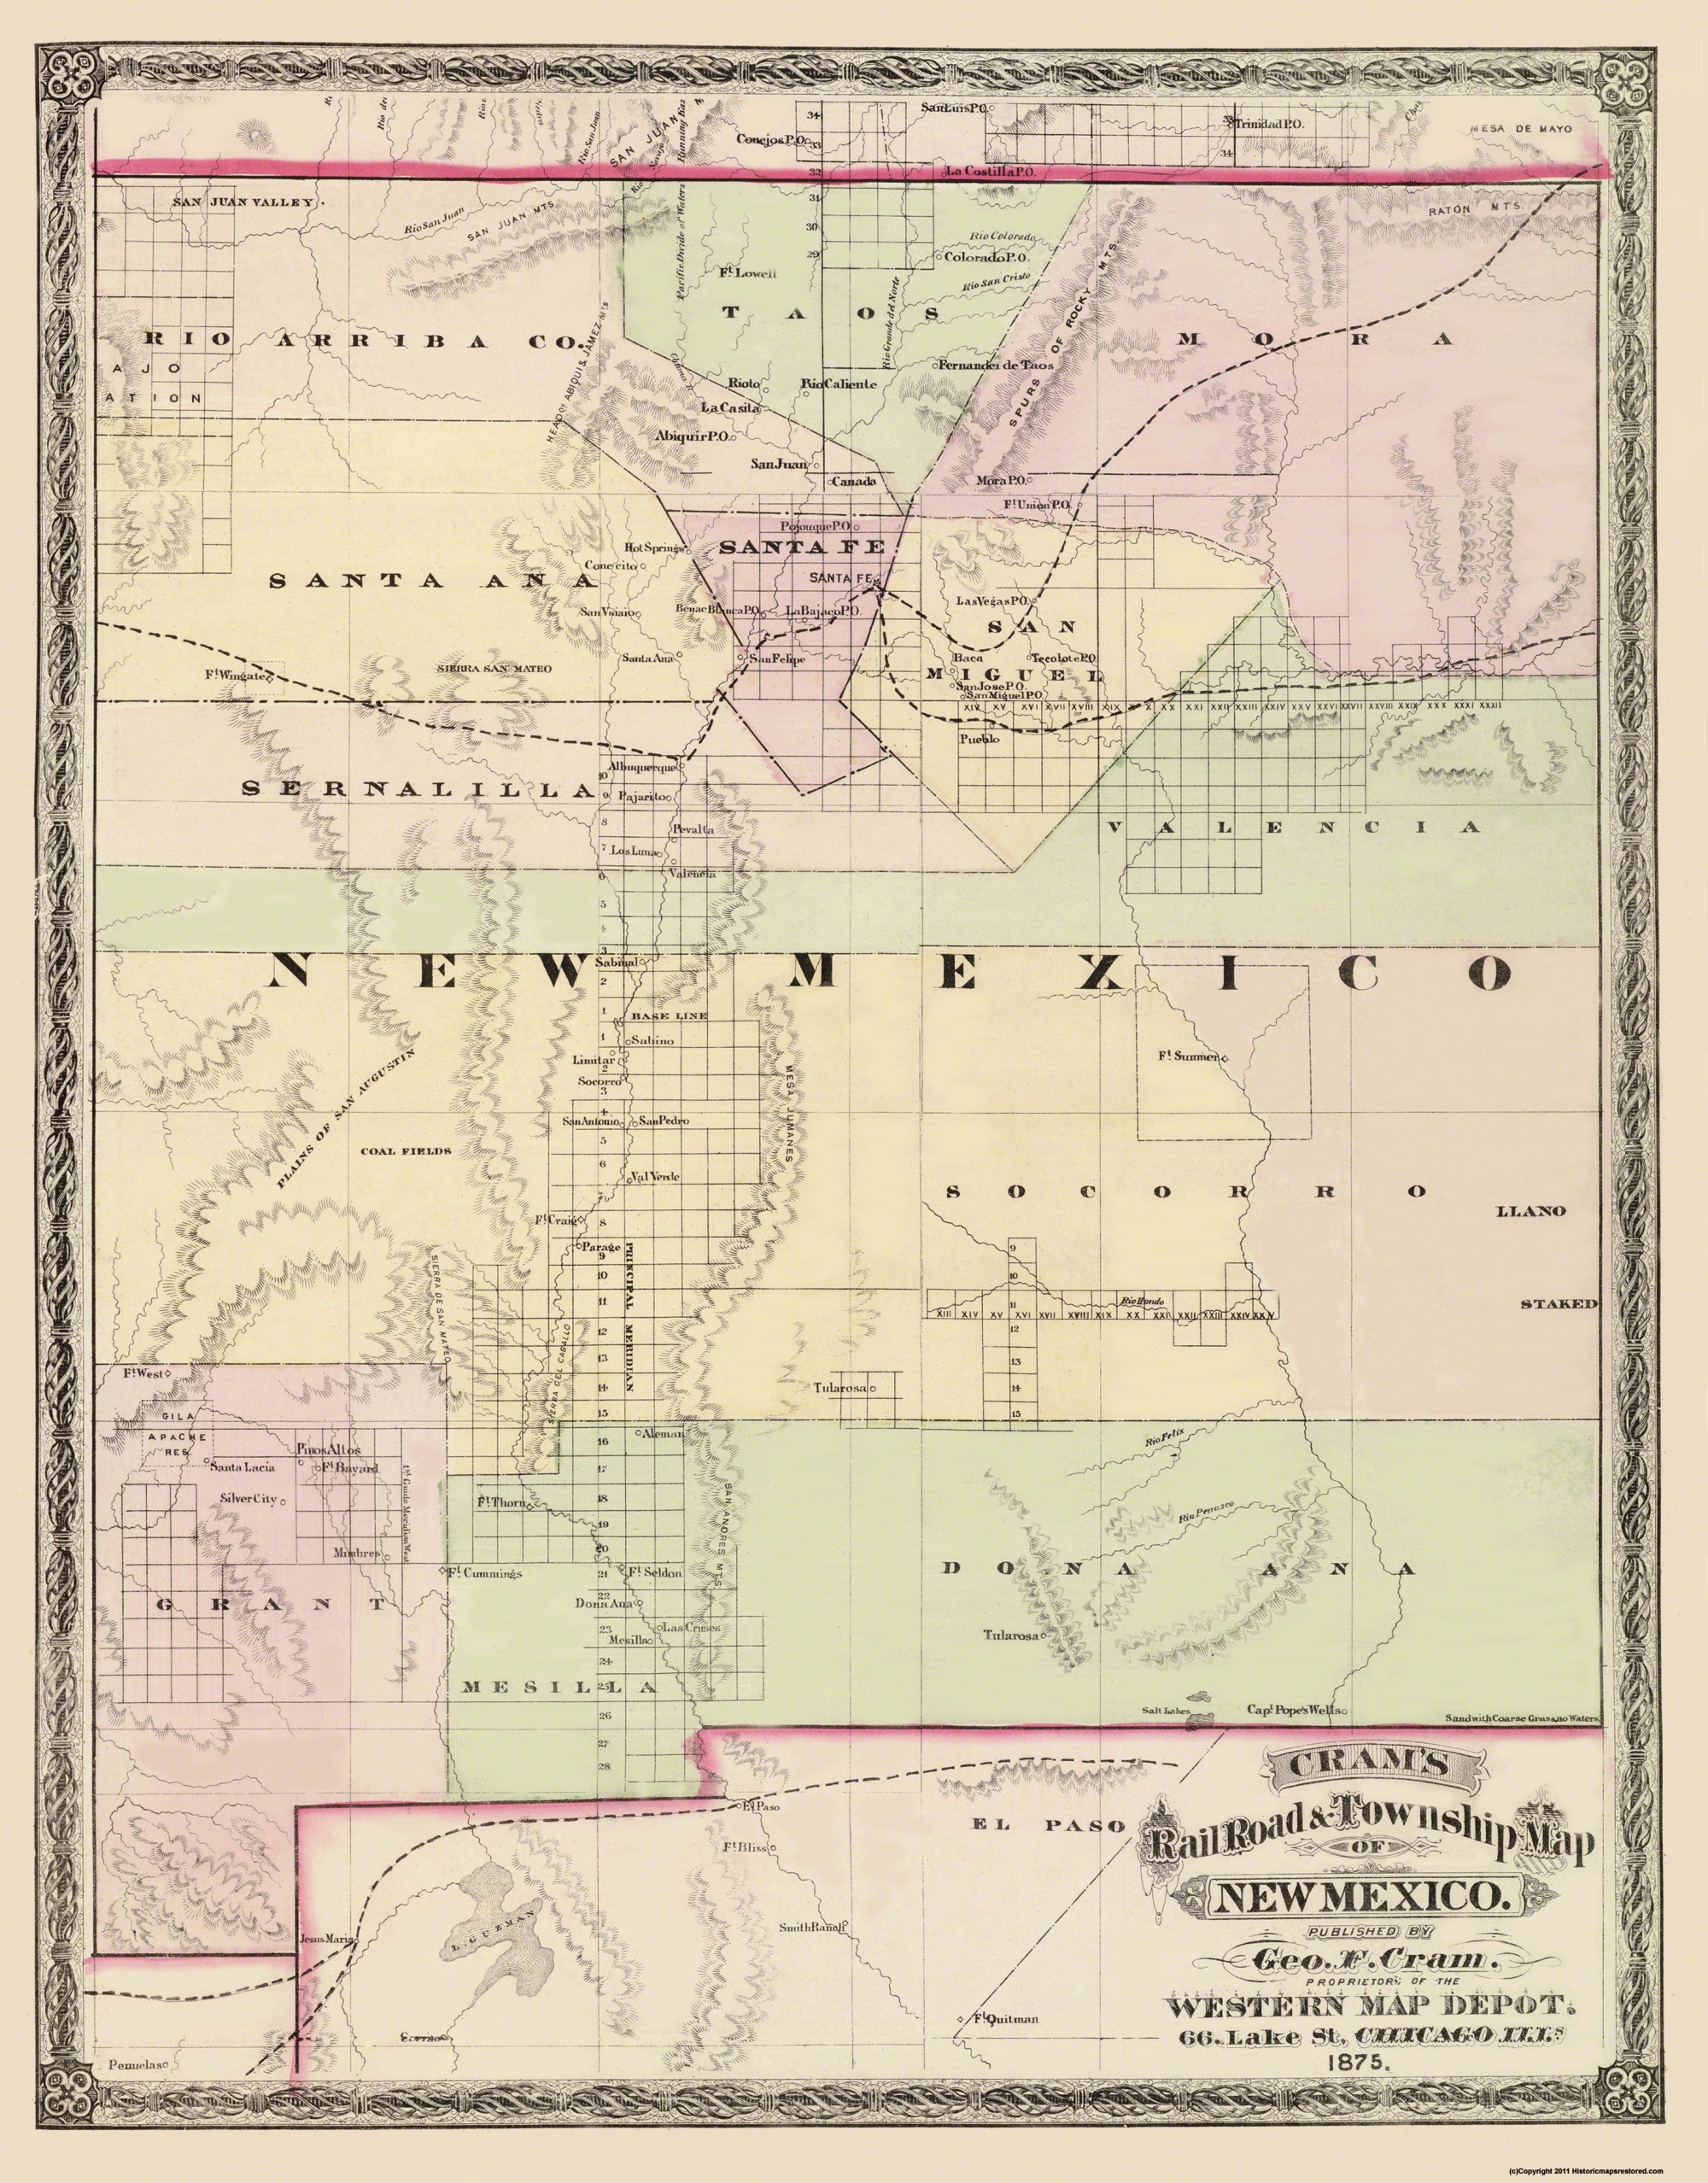 Old State Map - New Mexico Territory - Cram 1875